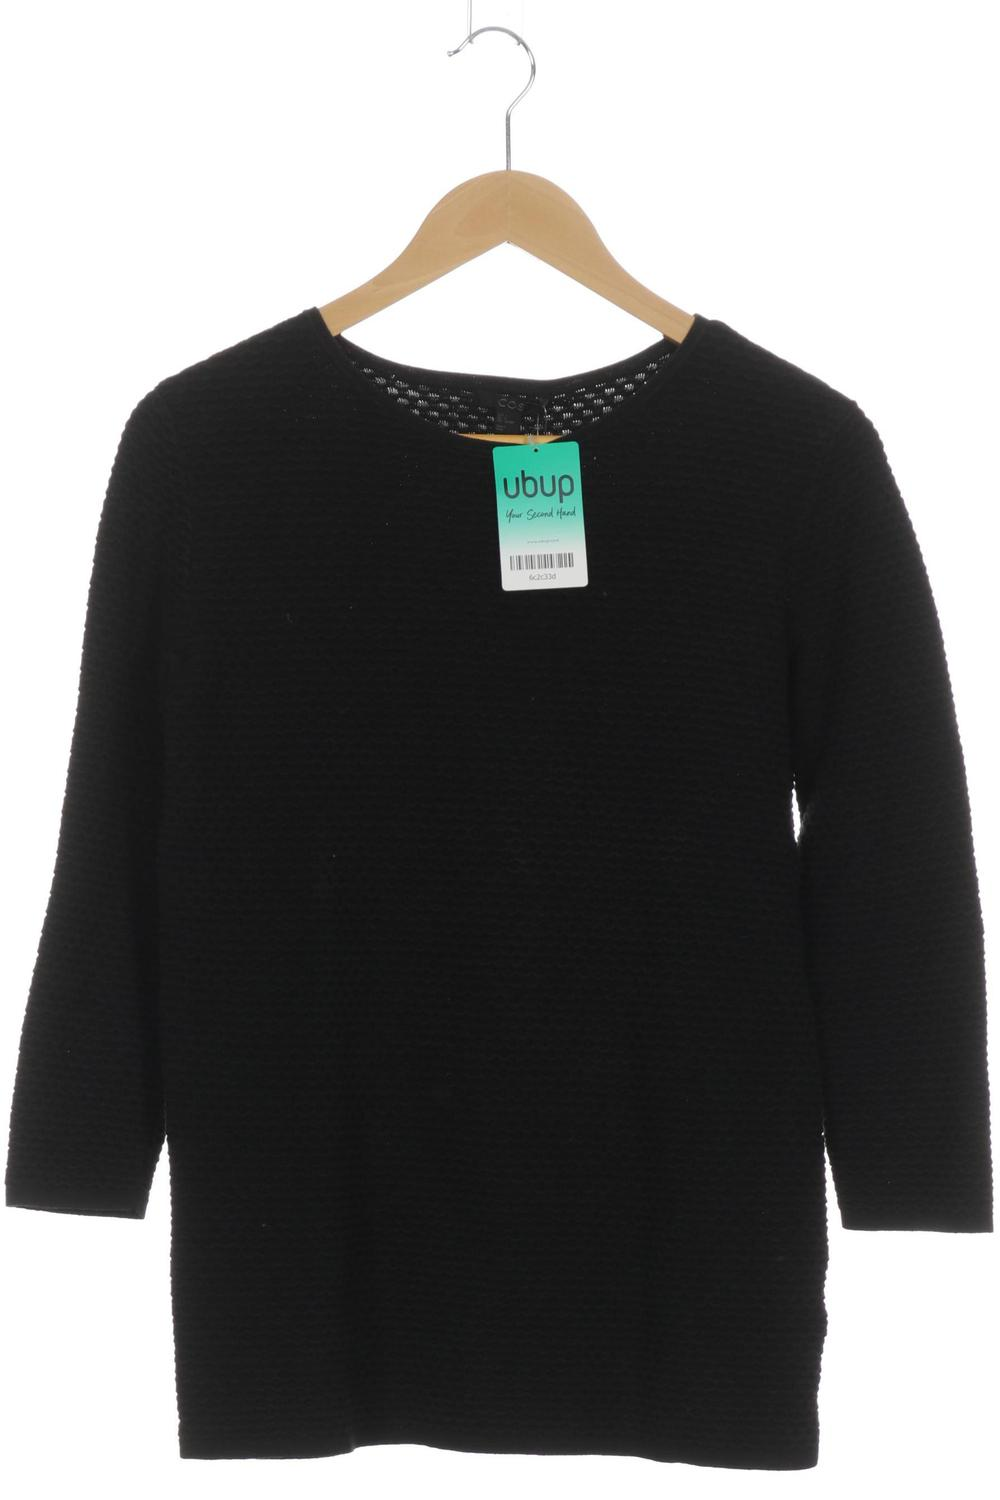 detailed look 7886f 4e698 ubup | COS Damen Pullover INT S Second Hand kaufen